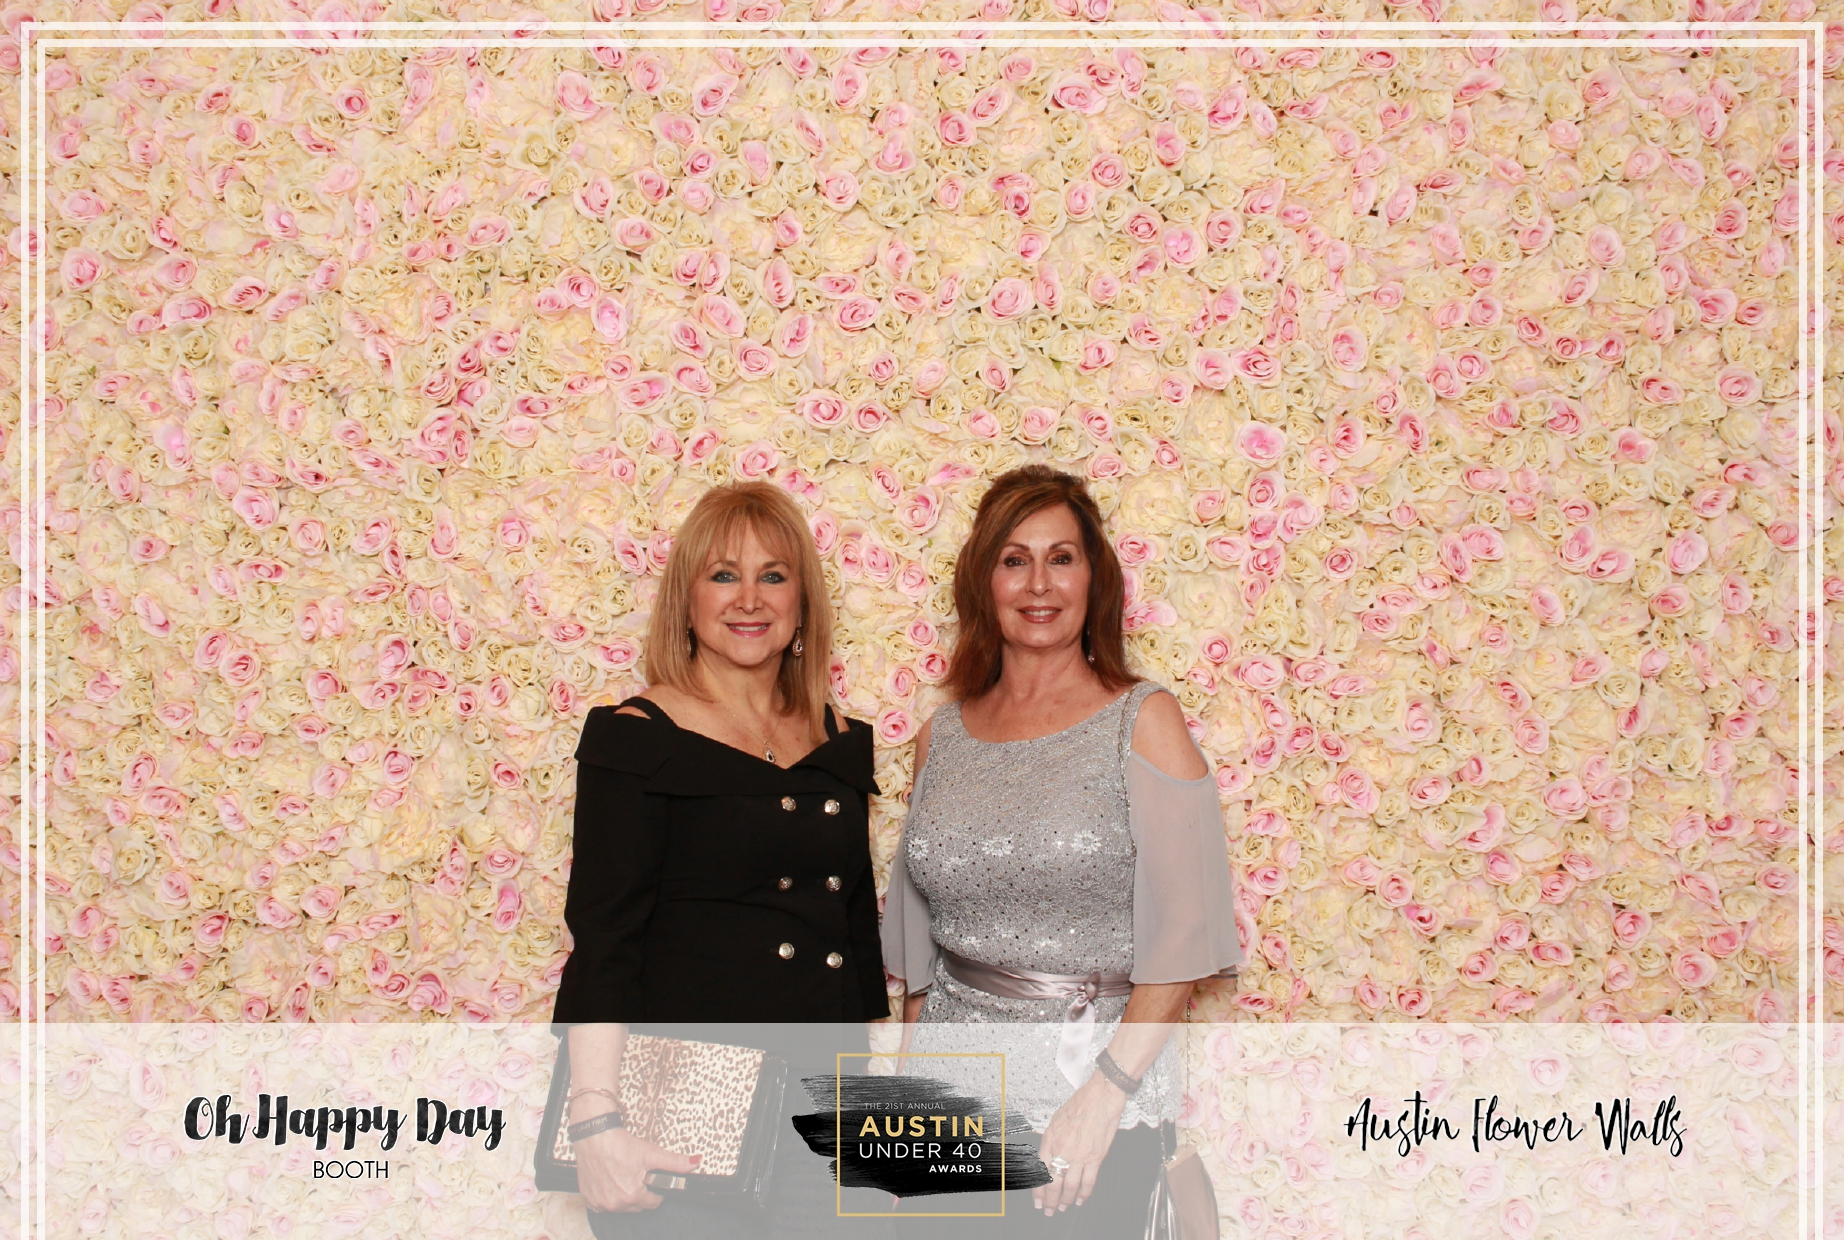 Oh Happy Day Booth - Austin Under 40-83.jpg